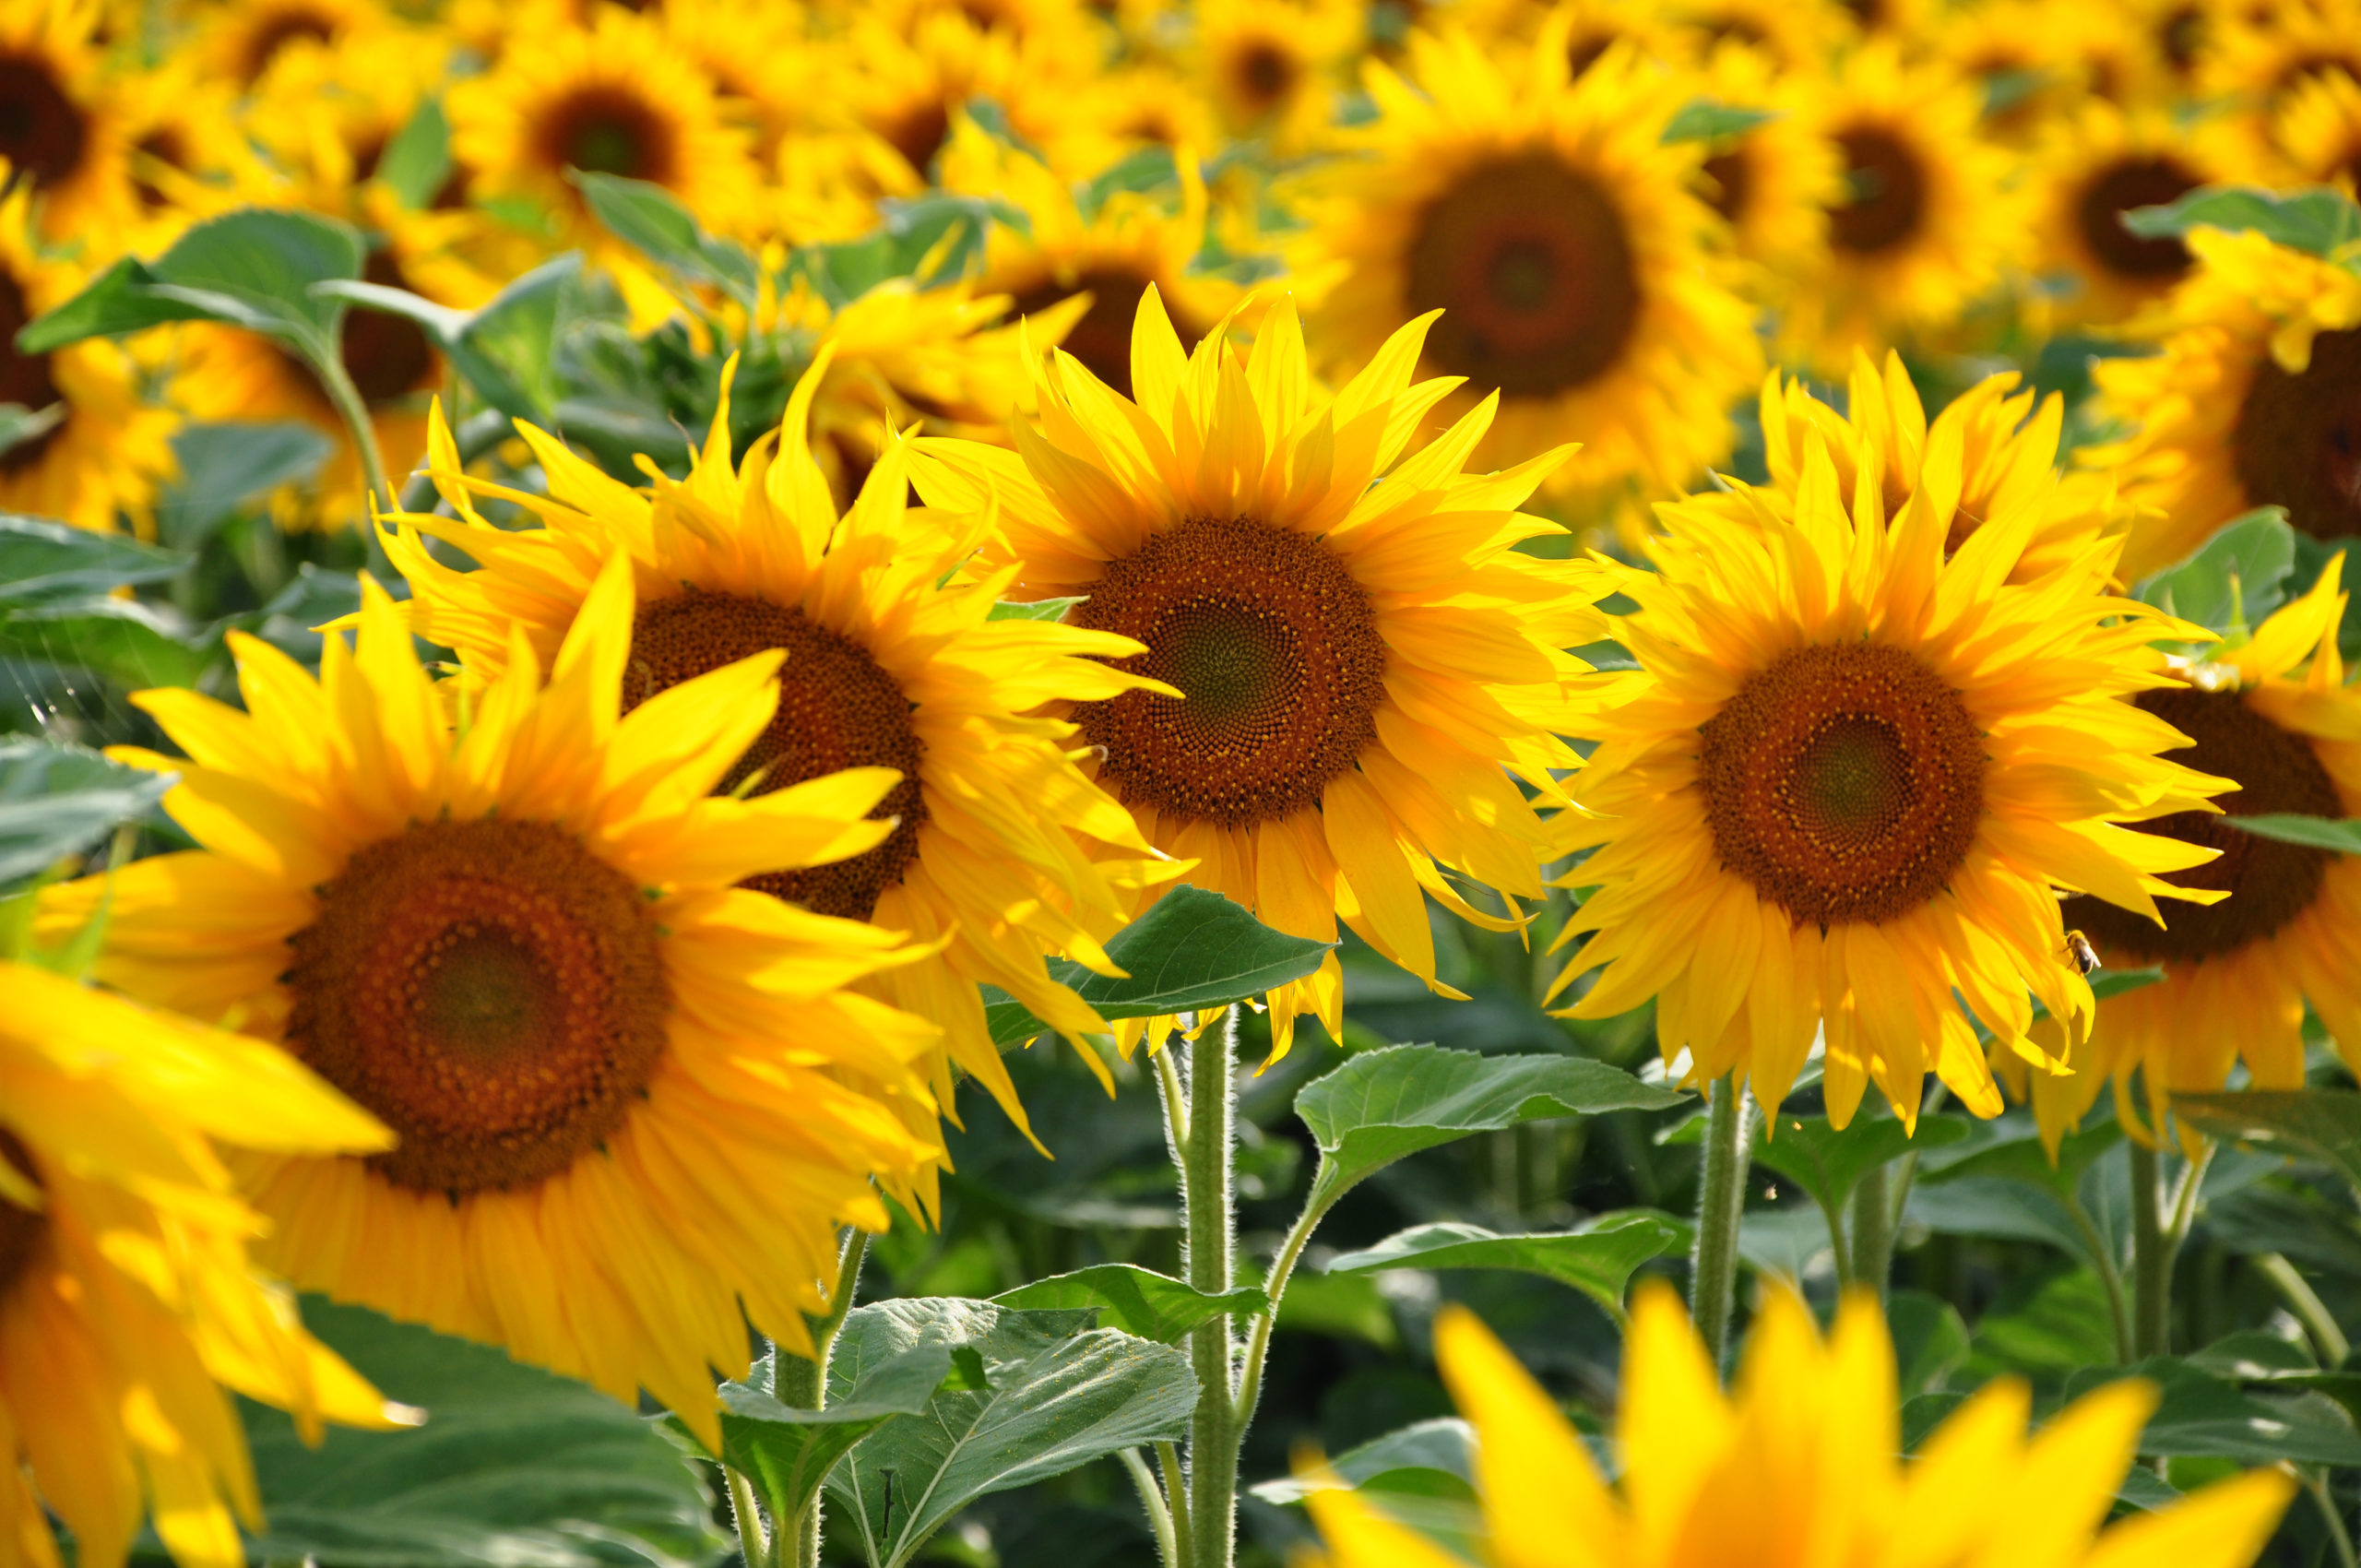 Several Blooming Sunflowers